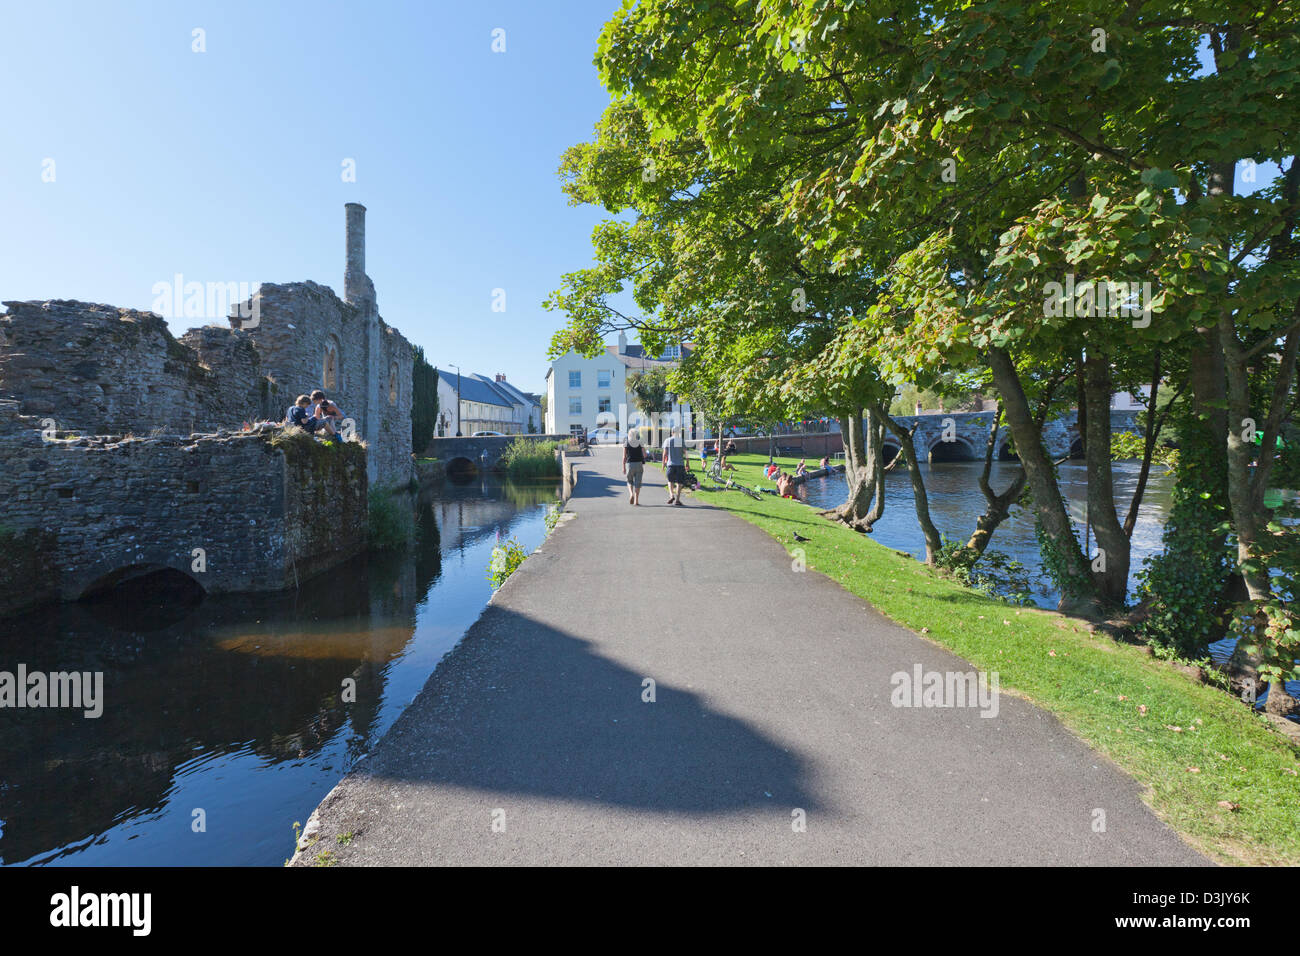 Strolling along the riverbank by the Avon in Christchurch - Stock Image